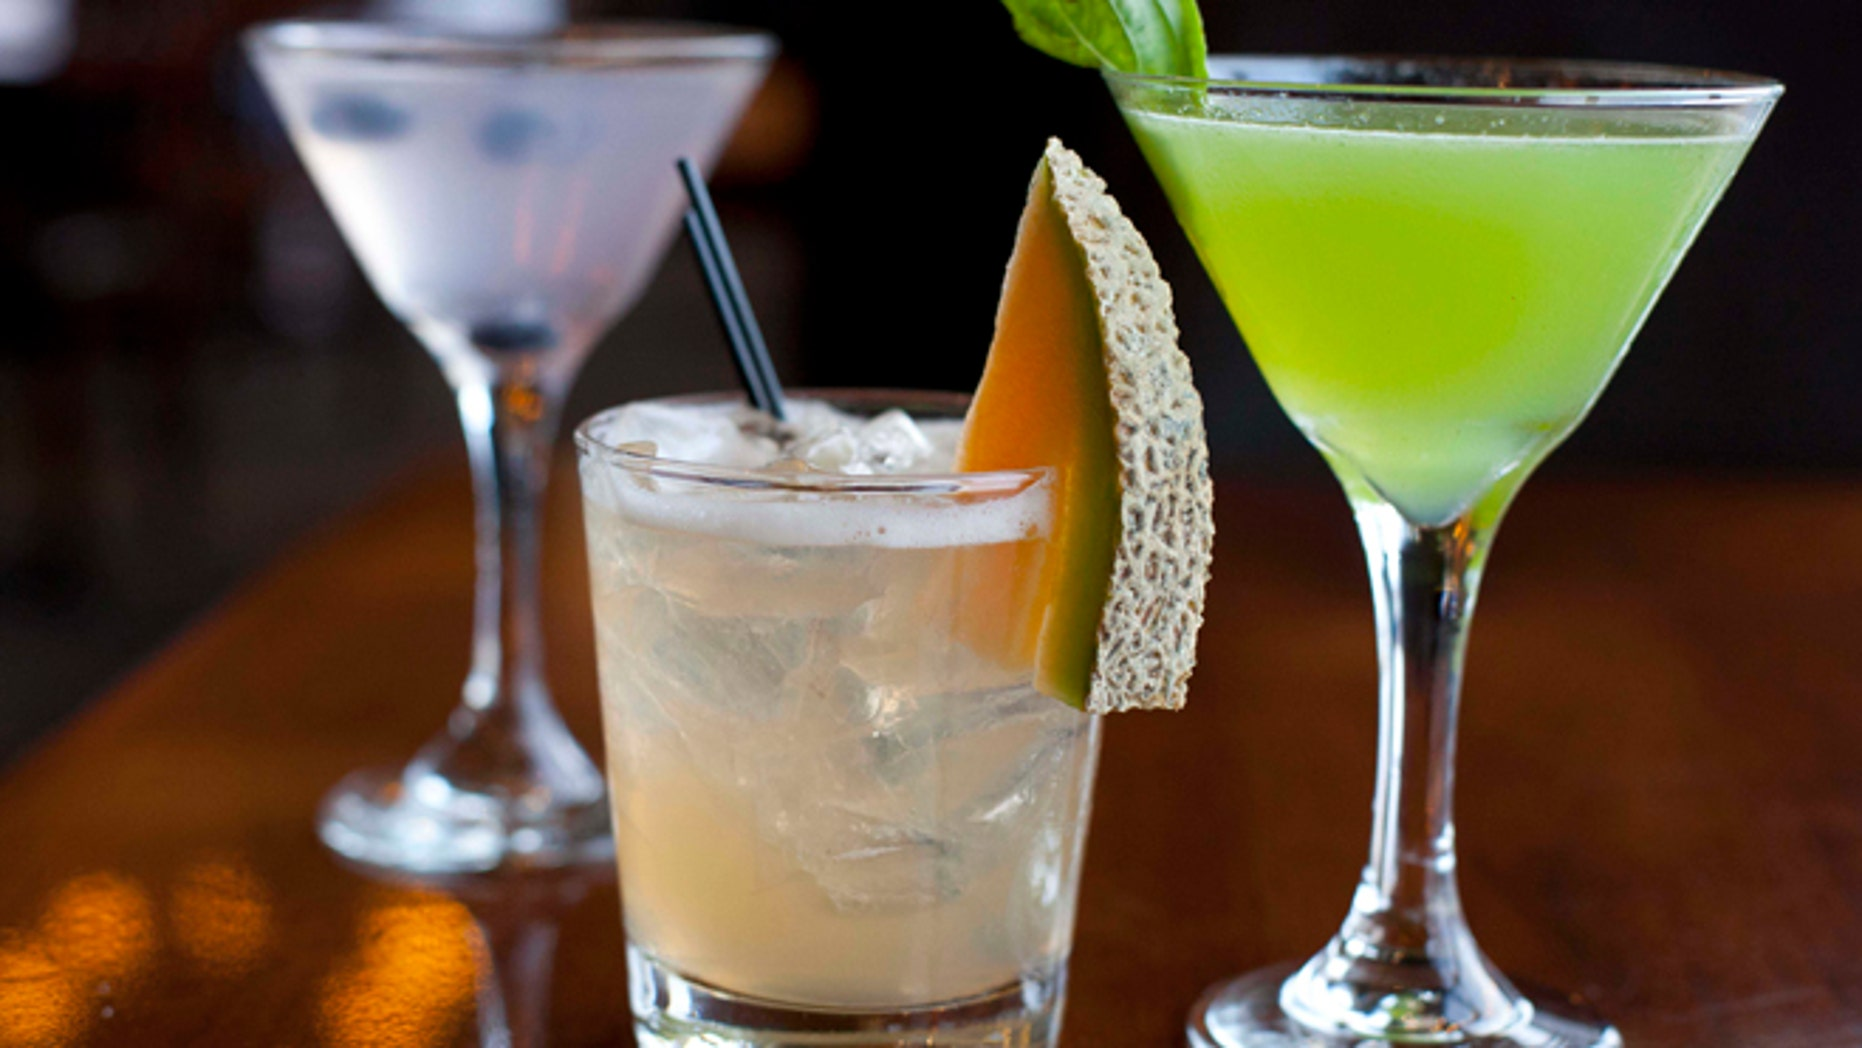 FILE -In this Monday, Nov. 19, 2012, file photo, cocktails are photographed in San Francisco. Airlines have found a way to take the edge off the stress of flying and make a few extra bucks along the way: fancy new cocktails, craft beers and elegant wines.(AP Photo/Eric Risberg)